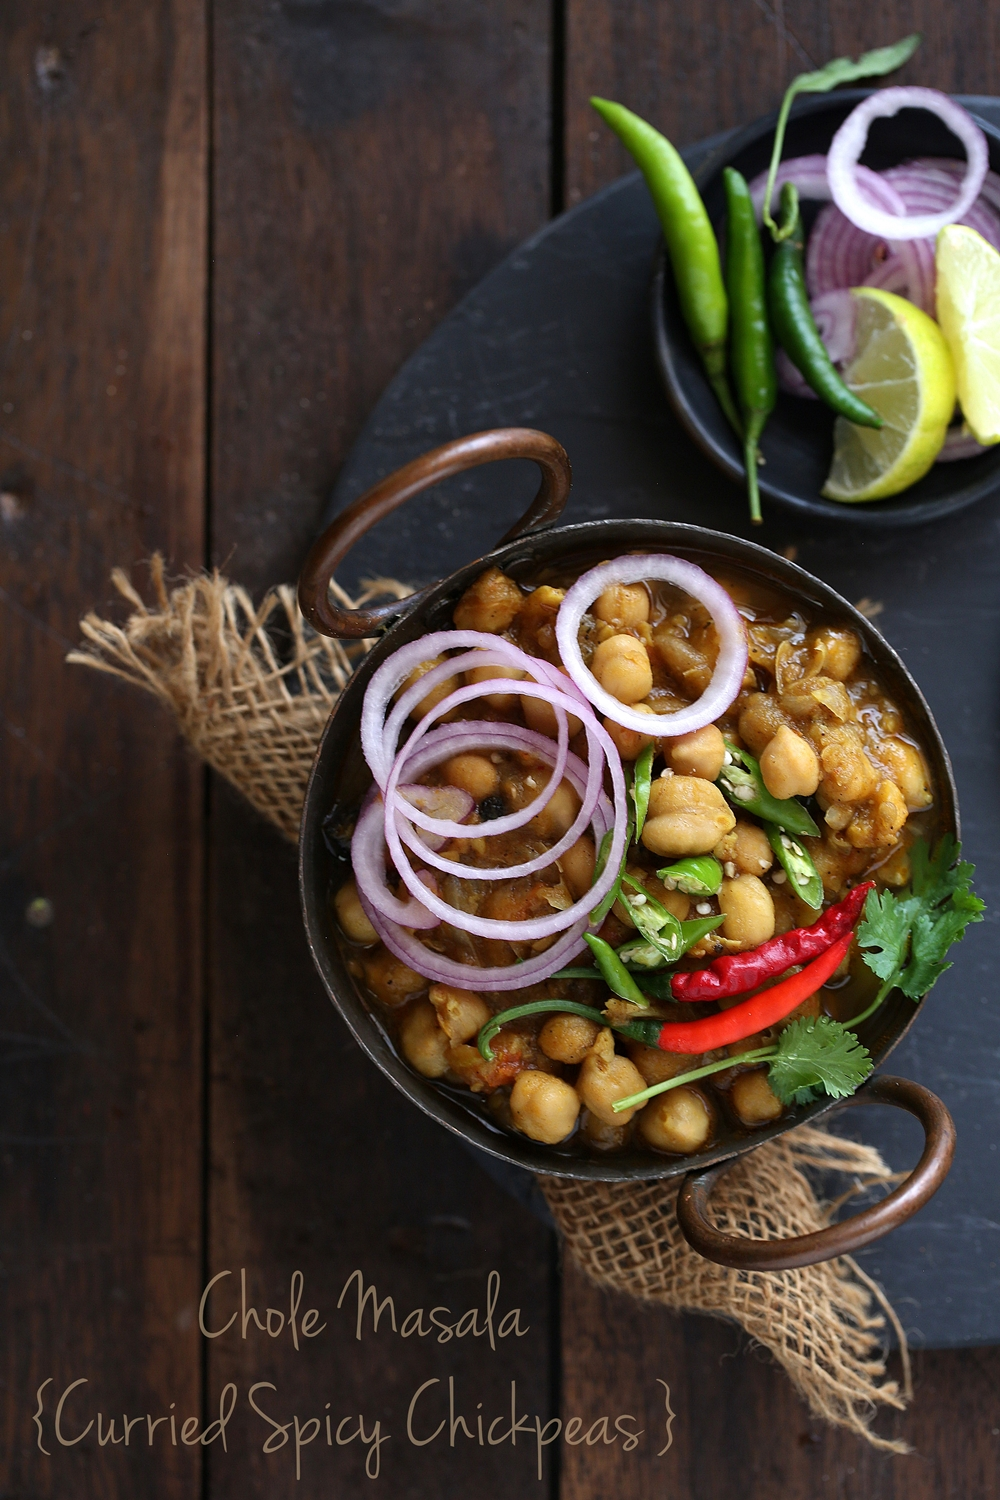 Chole Masala / Curried Spicy Chickpeas